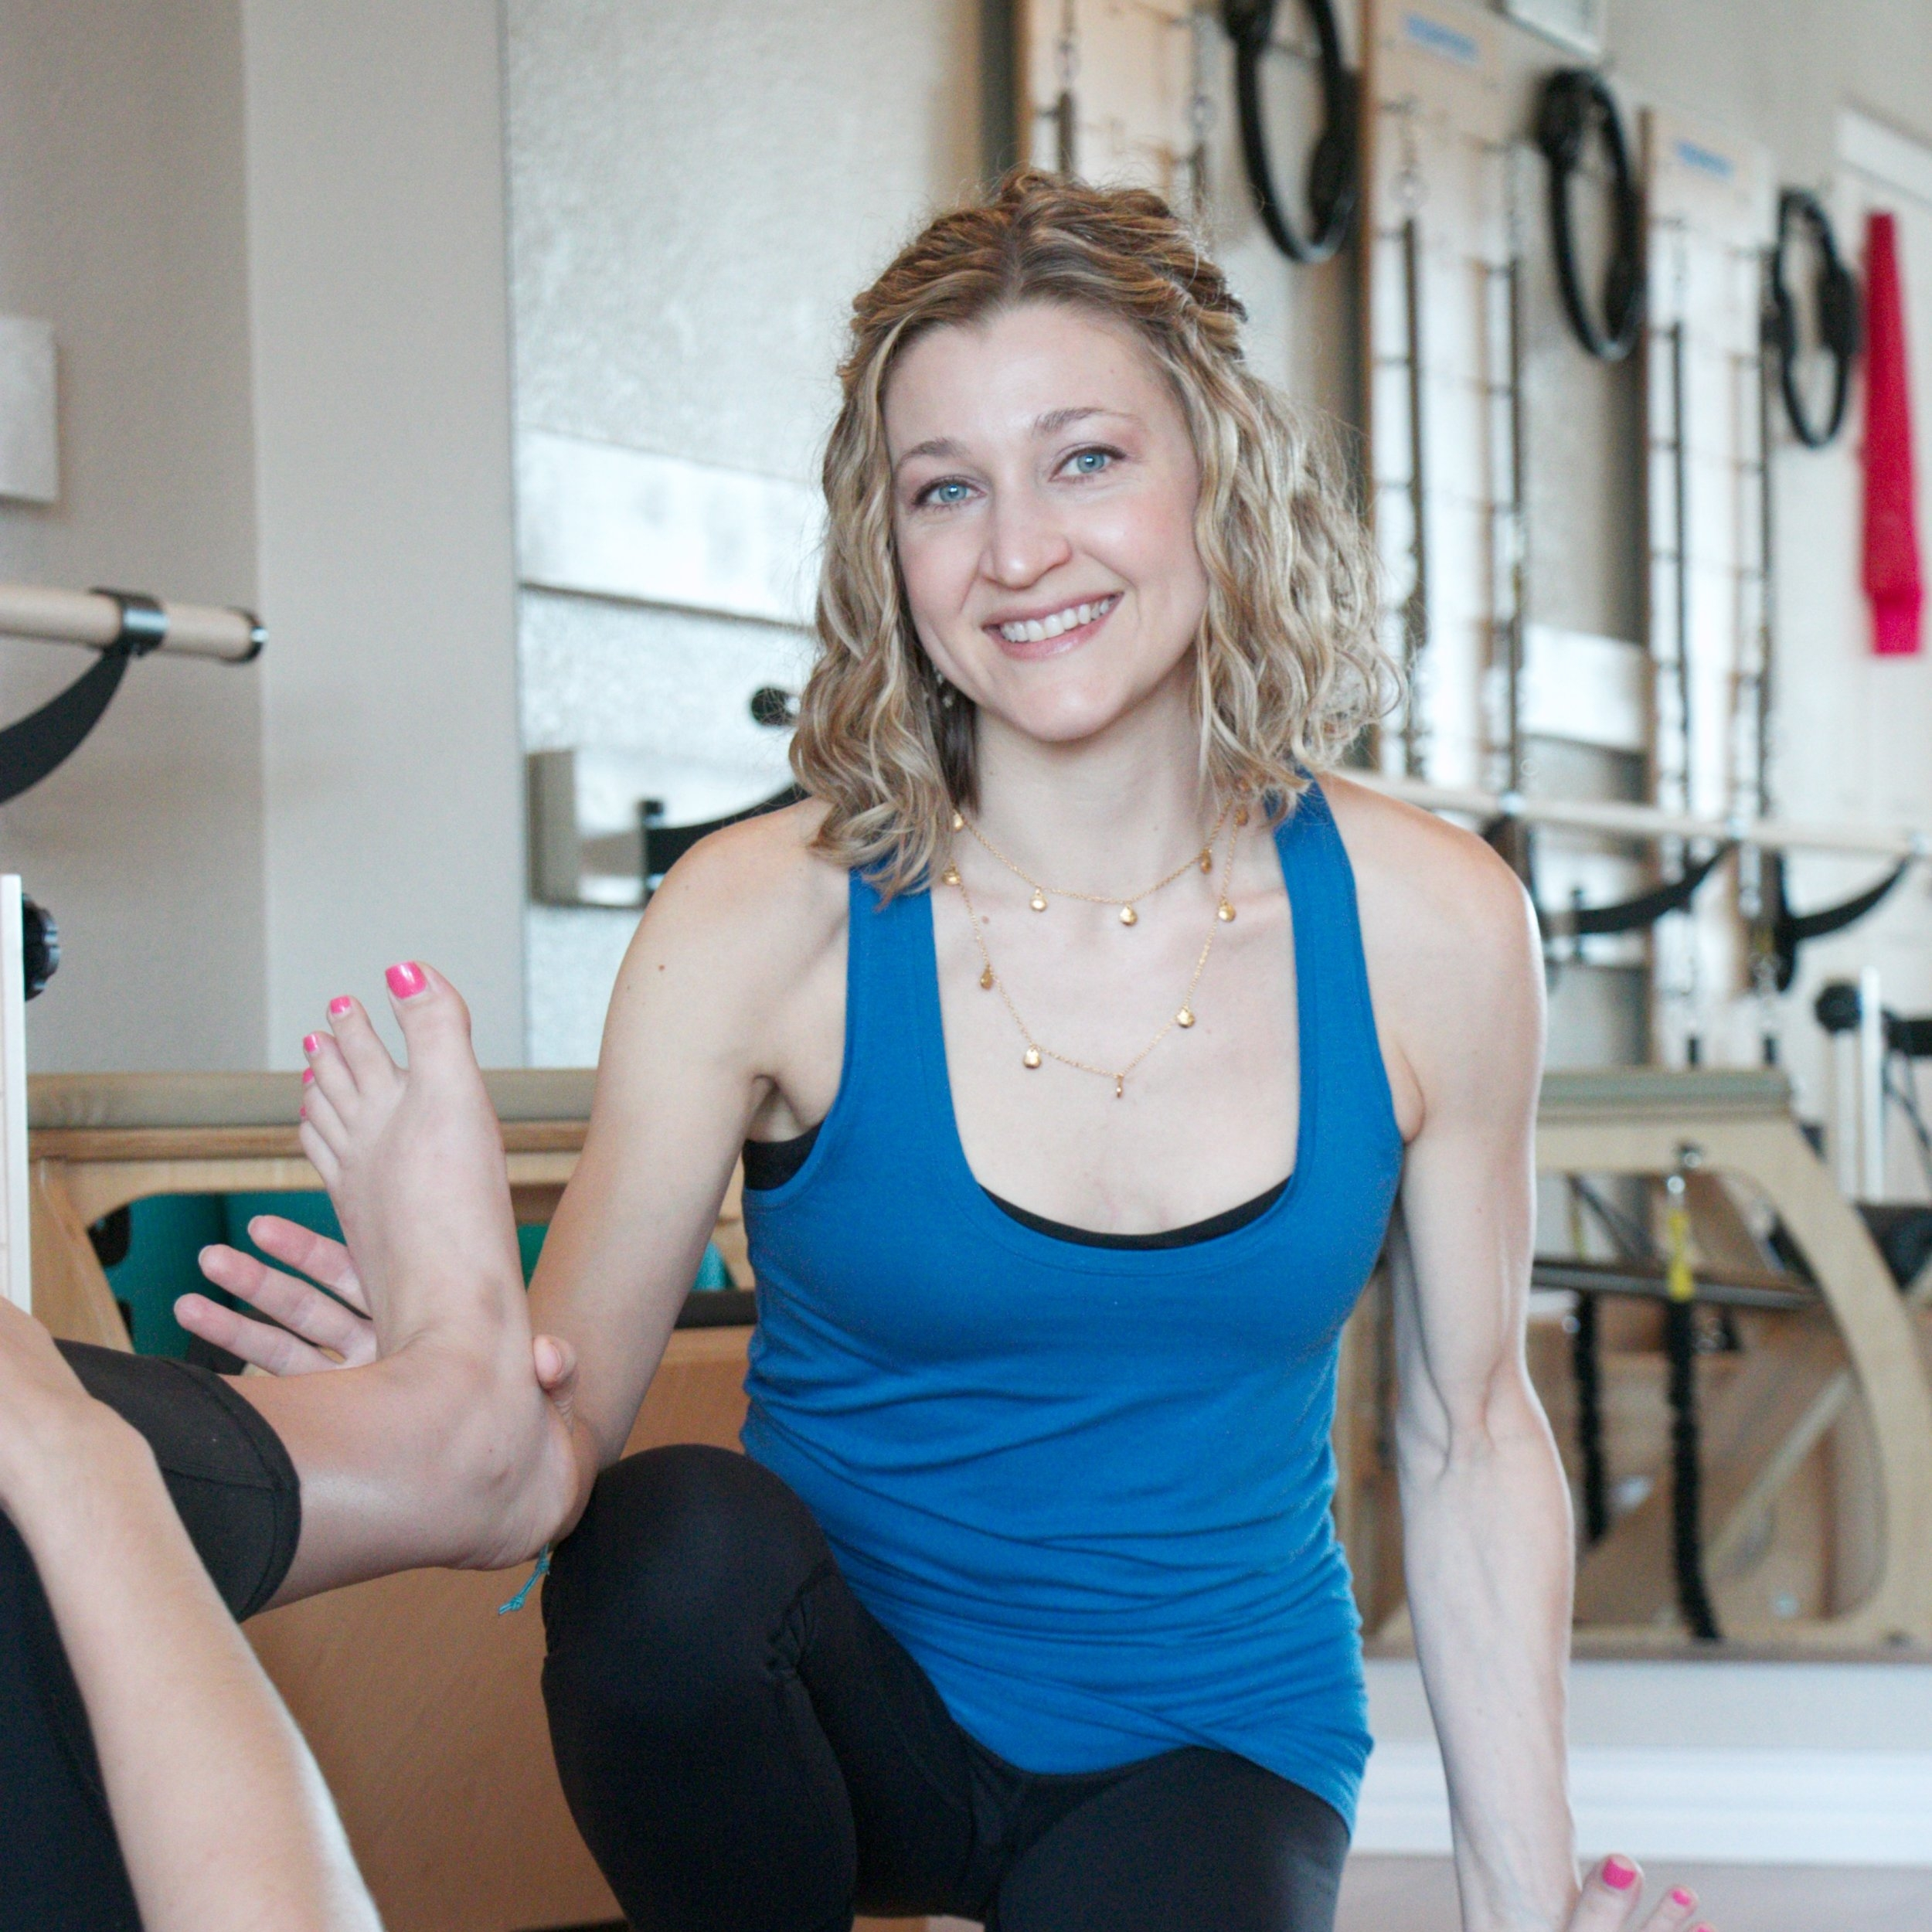 Written by Stephanie Vanderbeck, owner Purely Pilates Center, giving a shout out to all the girl bosses doing bossy things.